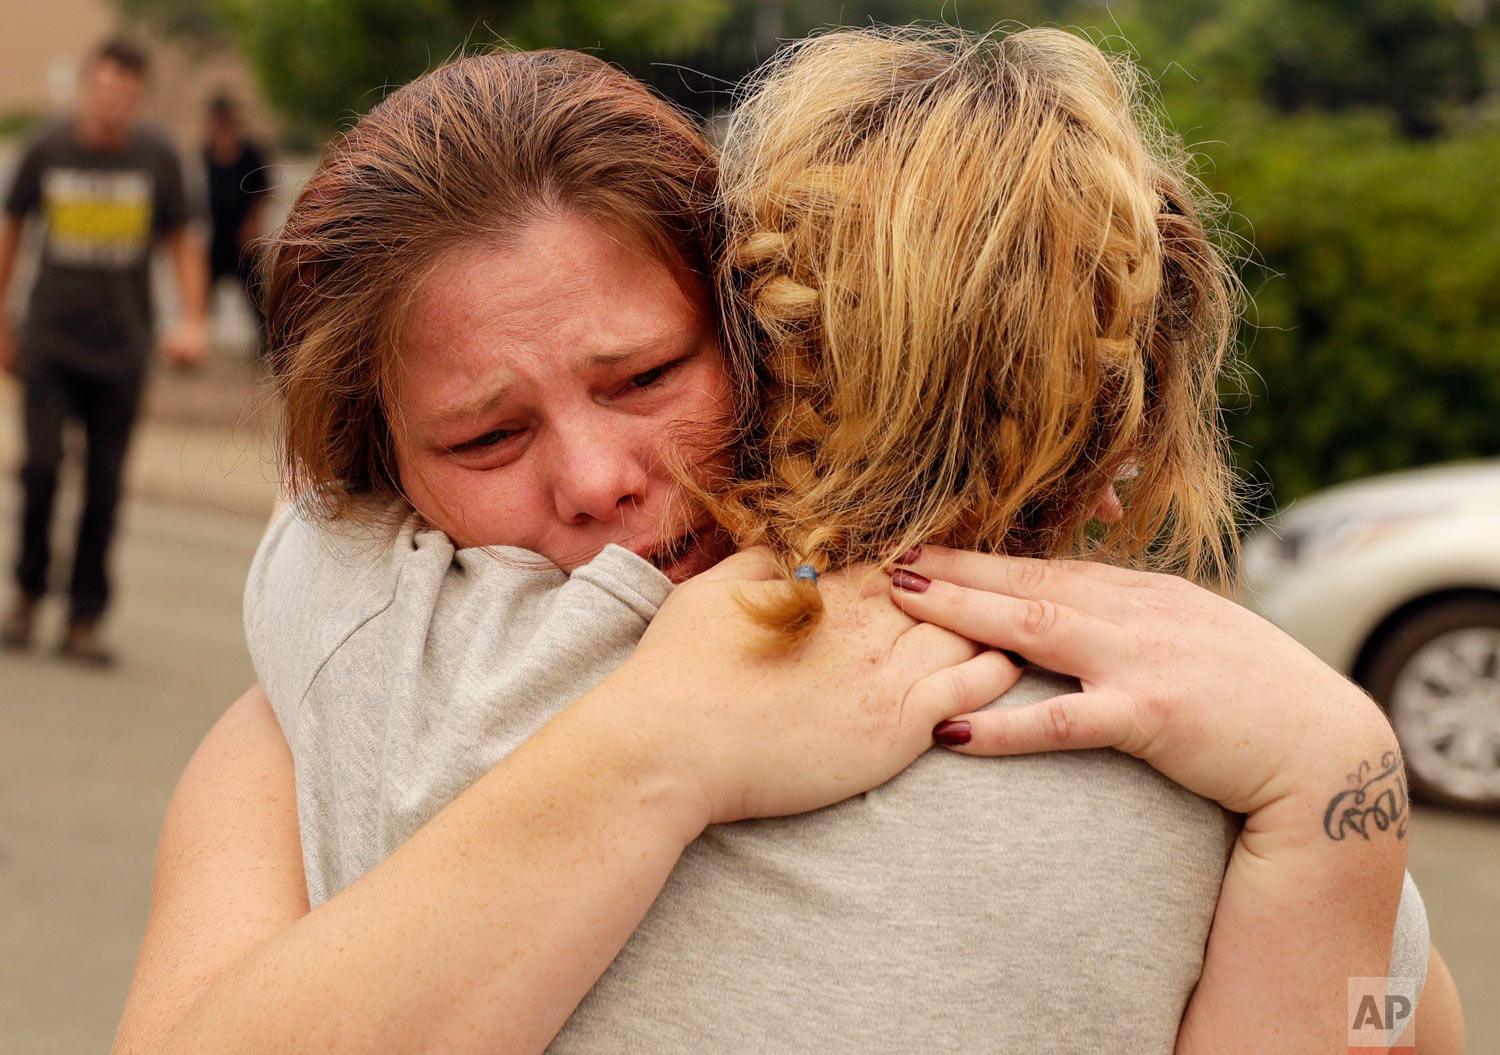 Carla Bledsoe, facing camera, hugs her sister, Sherry, outside of the sheriff's office in Redding, Calif., on Saturday, July 28, 2018, after hearing news that Sherry's children, James and Emily, and her grandmother, Melody Bledsoe, were killed in a wildfire. (AP Photo/Marcio Jose Sanchez)